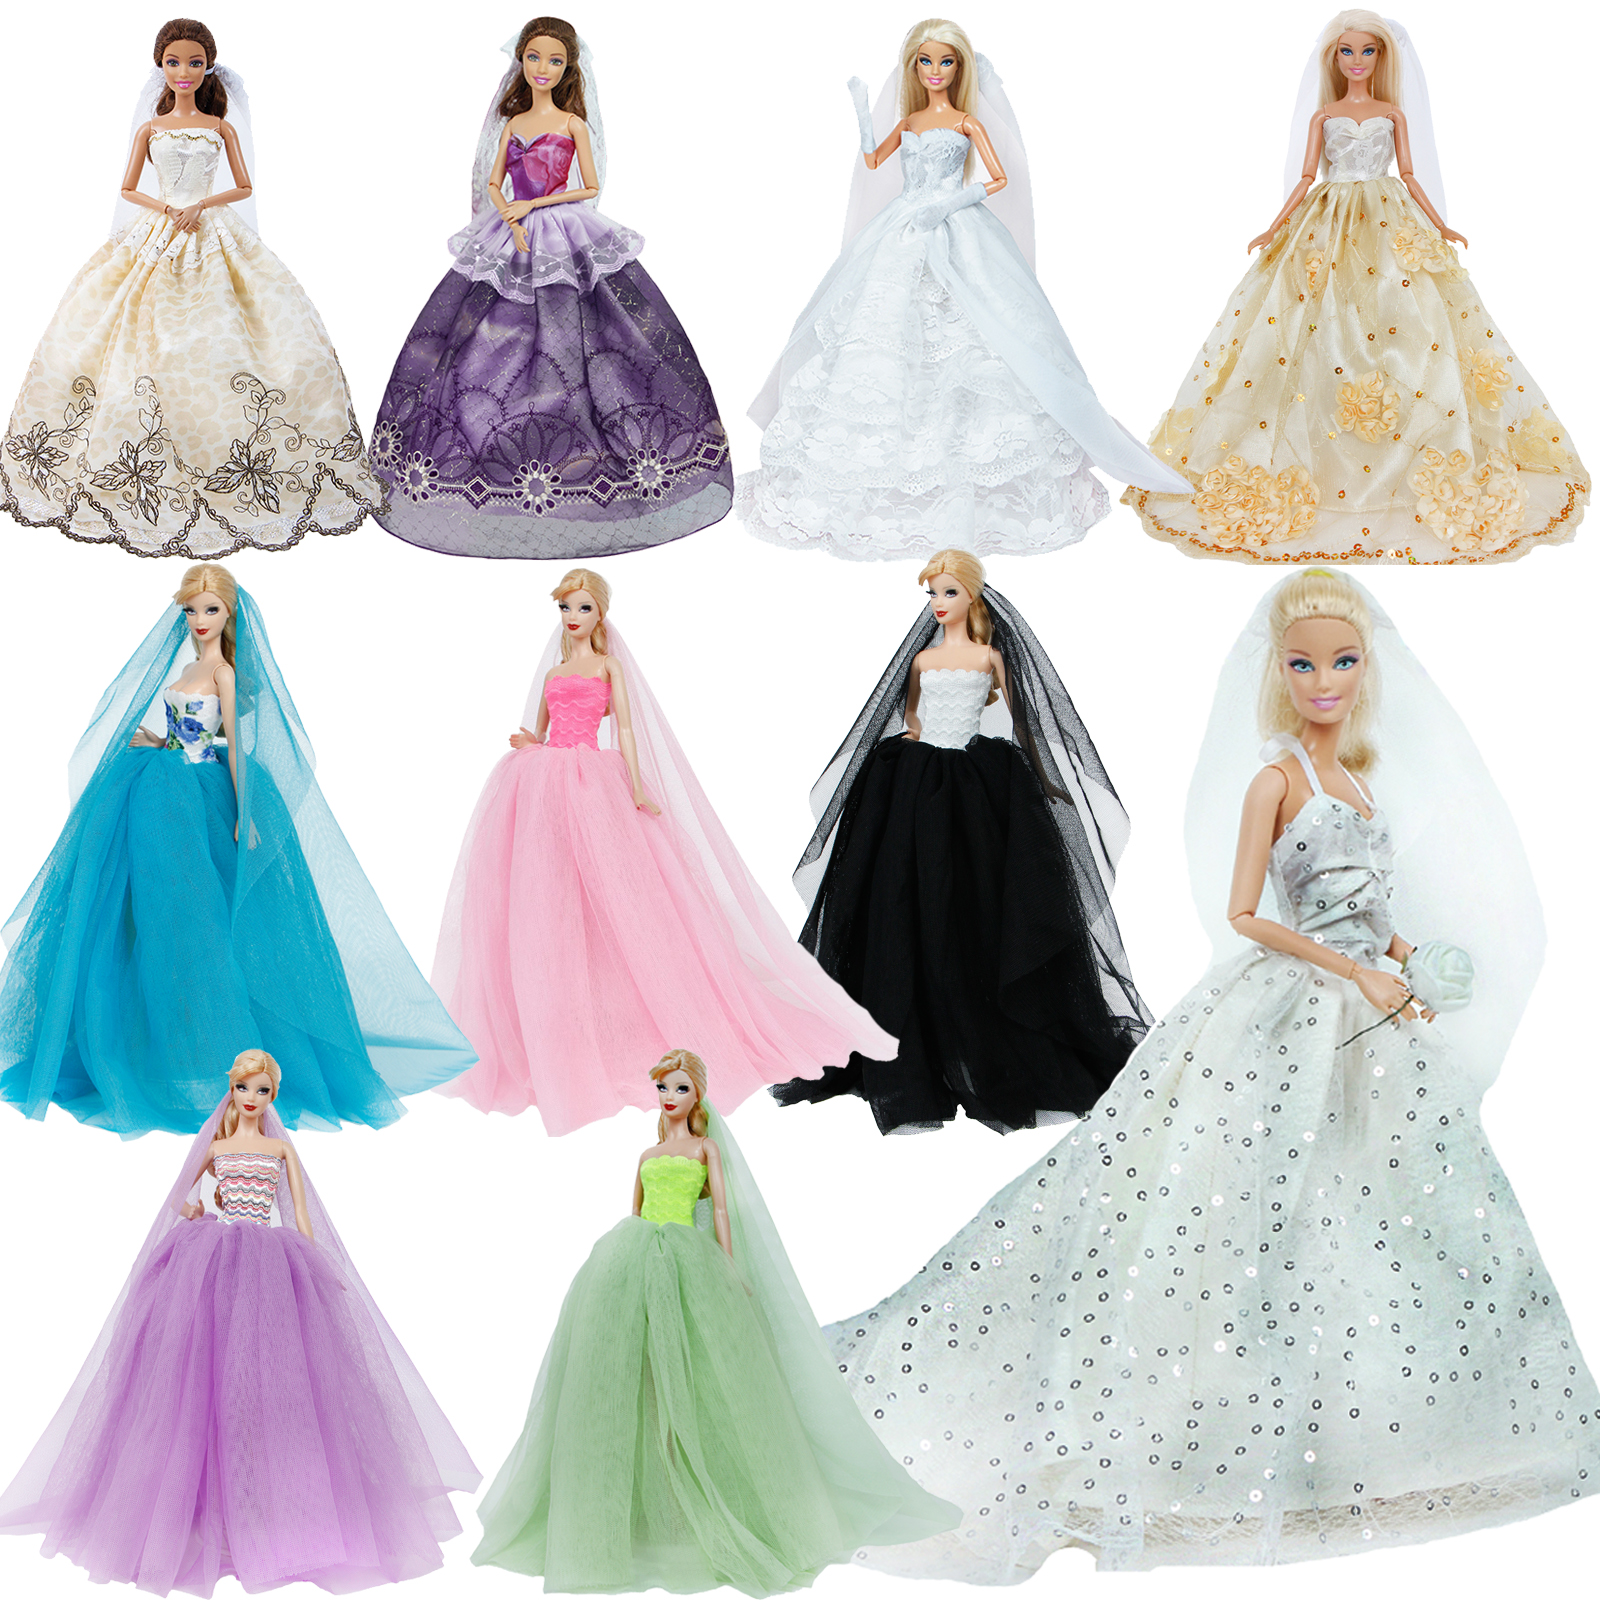 Fashion Strapless Lace Ball Gown Bride White Wedding Dresses Princess Trailing Veil Clothes For Barbie Doll Accessories Girl Toy